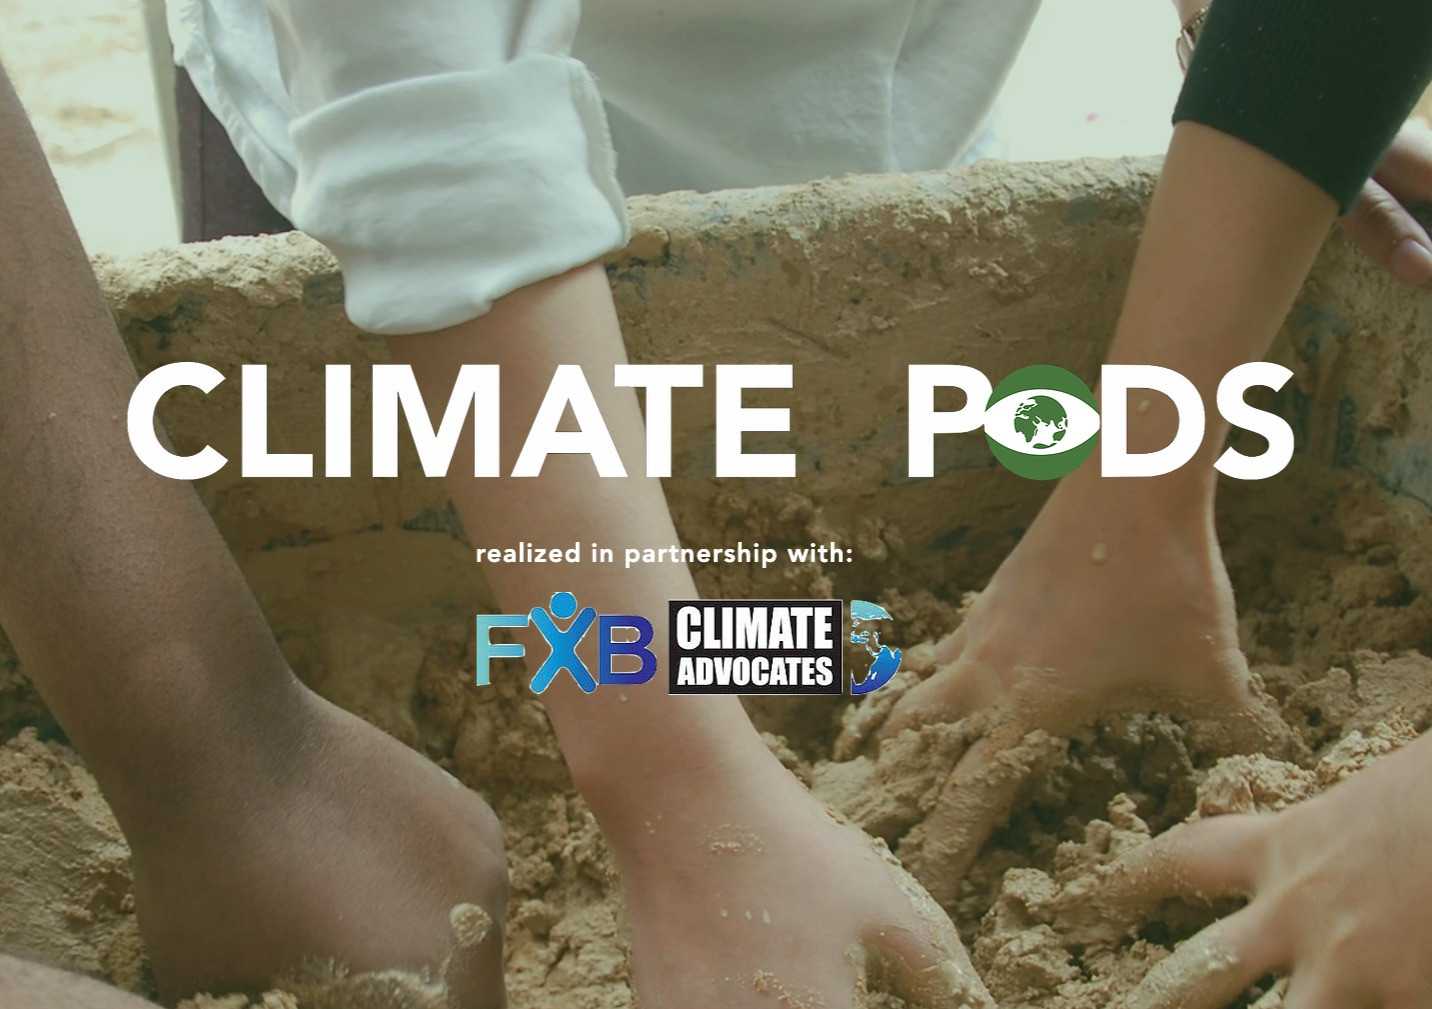 Climate PODS